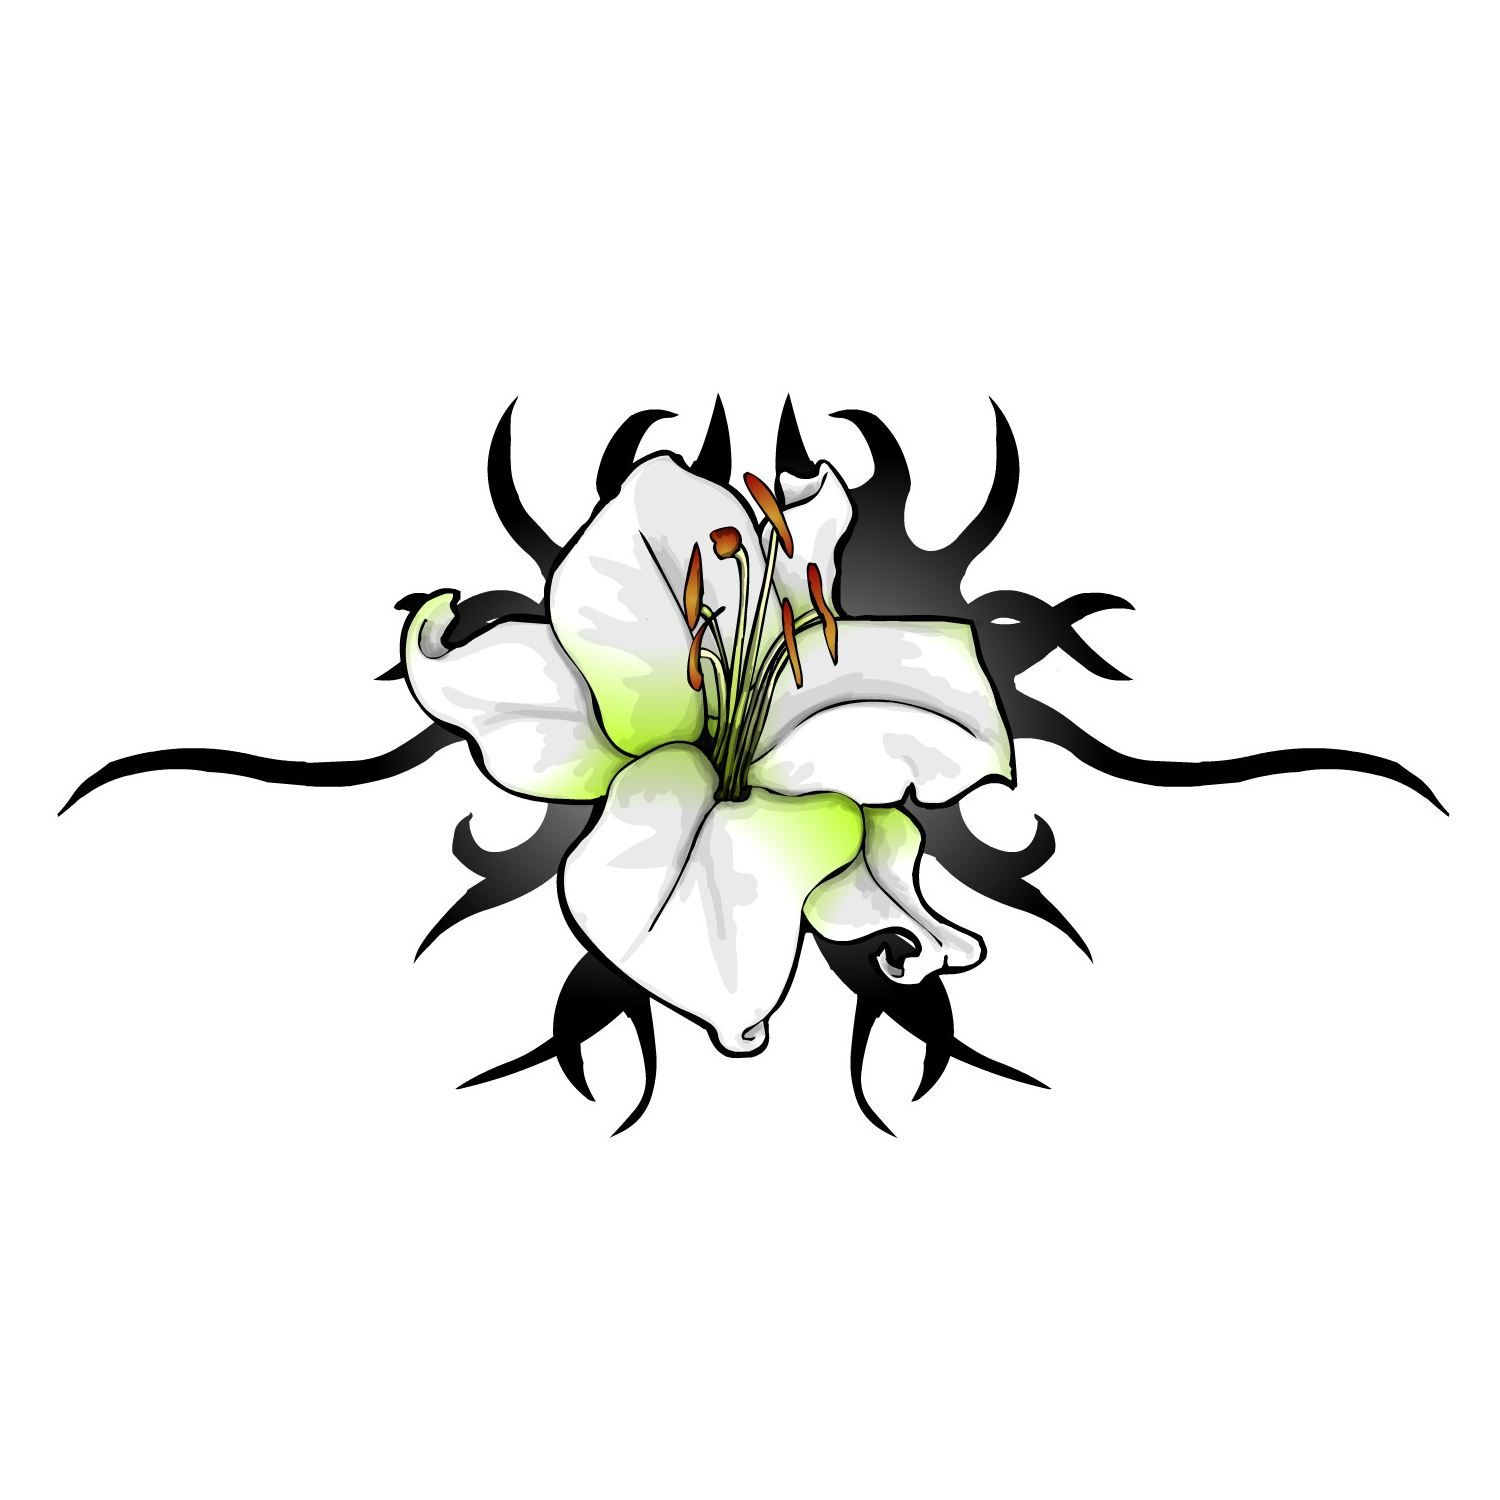 Tribal flower tattoos for women tattoo flower designs lily flowers image detail for tattoo flower designs lily flowers tribal orange red and yellow white izmirmasajfo Choice Image